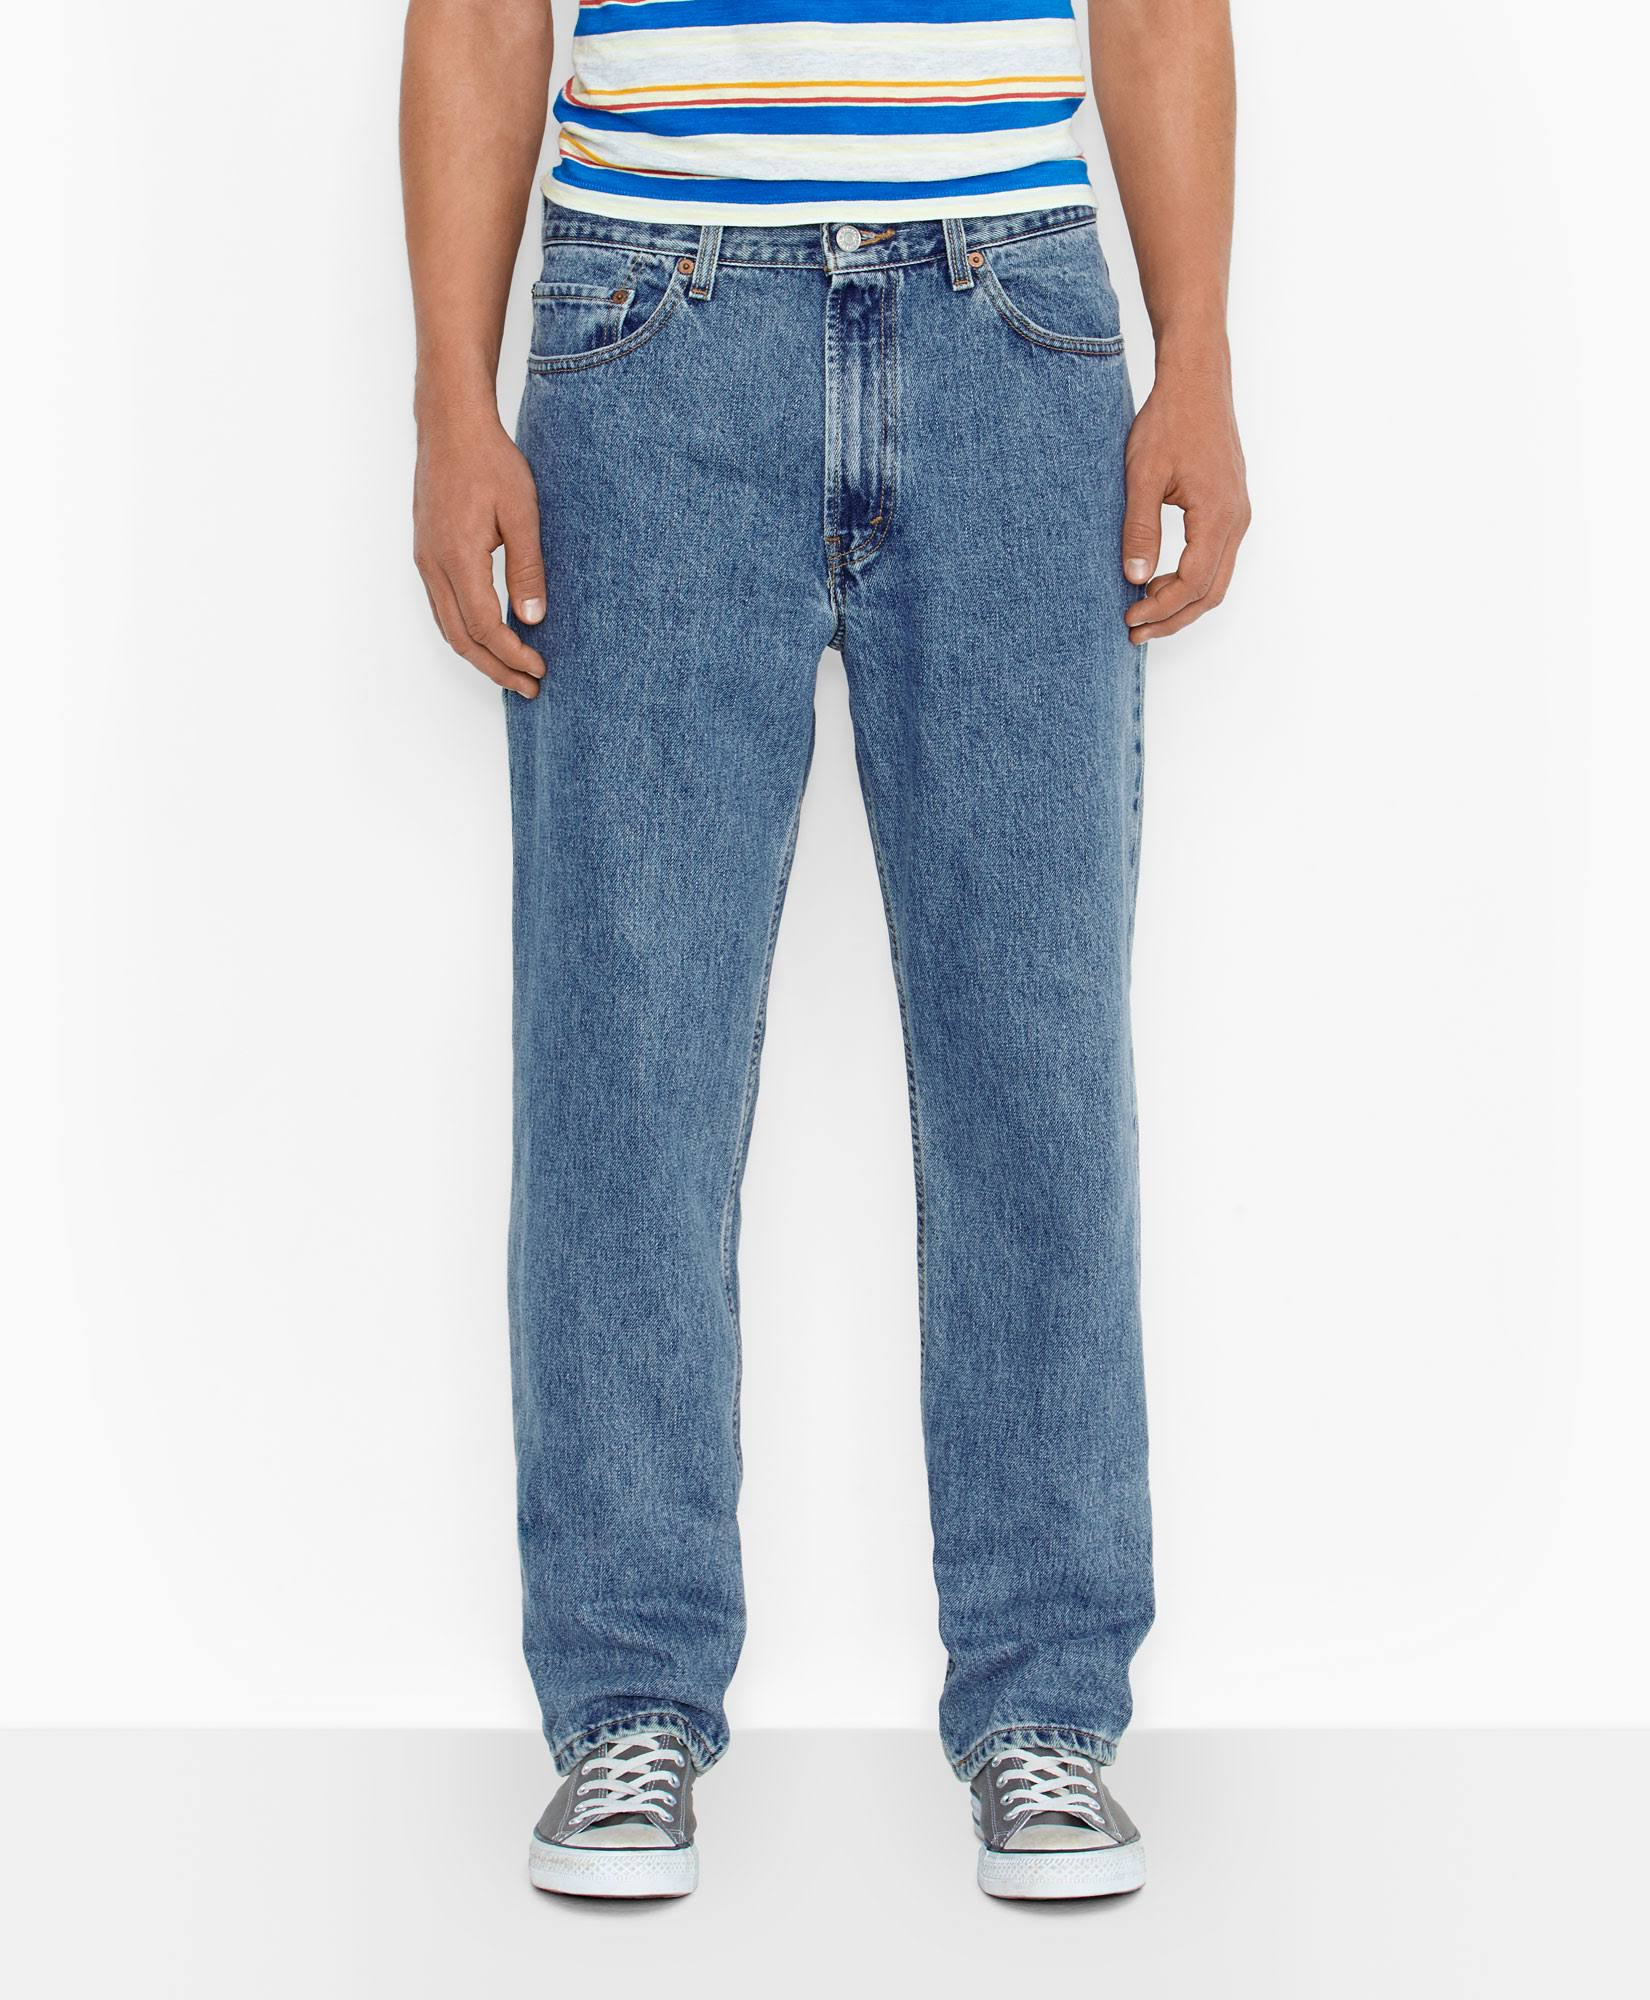 Levi's Men's 550 Relaxed Fit Jeans - Medium Stonewash